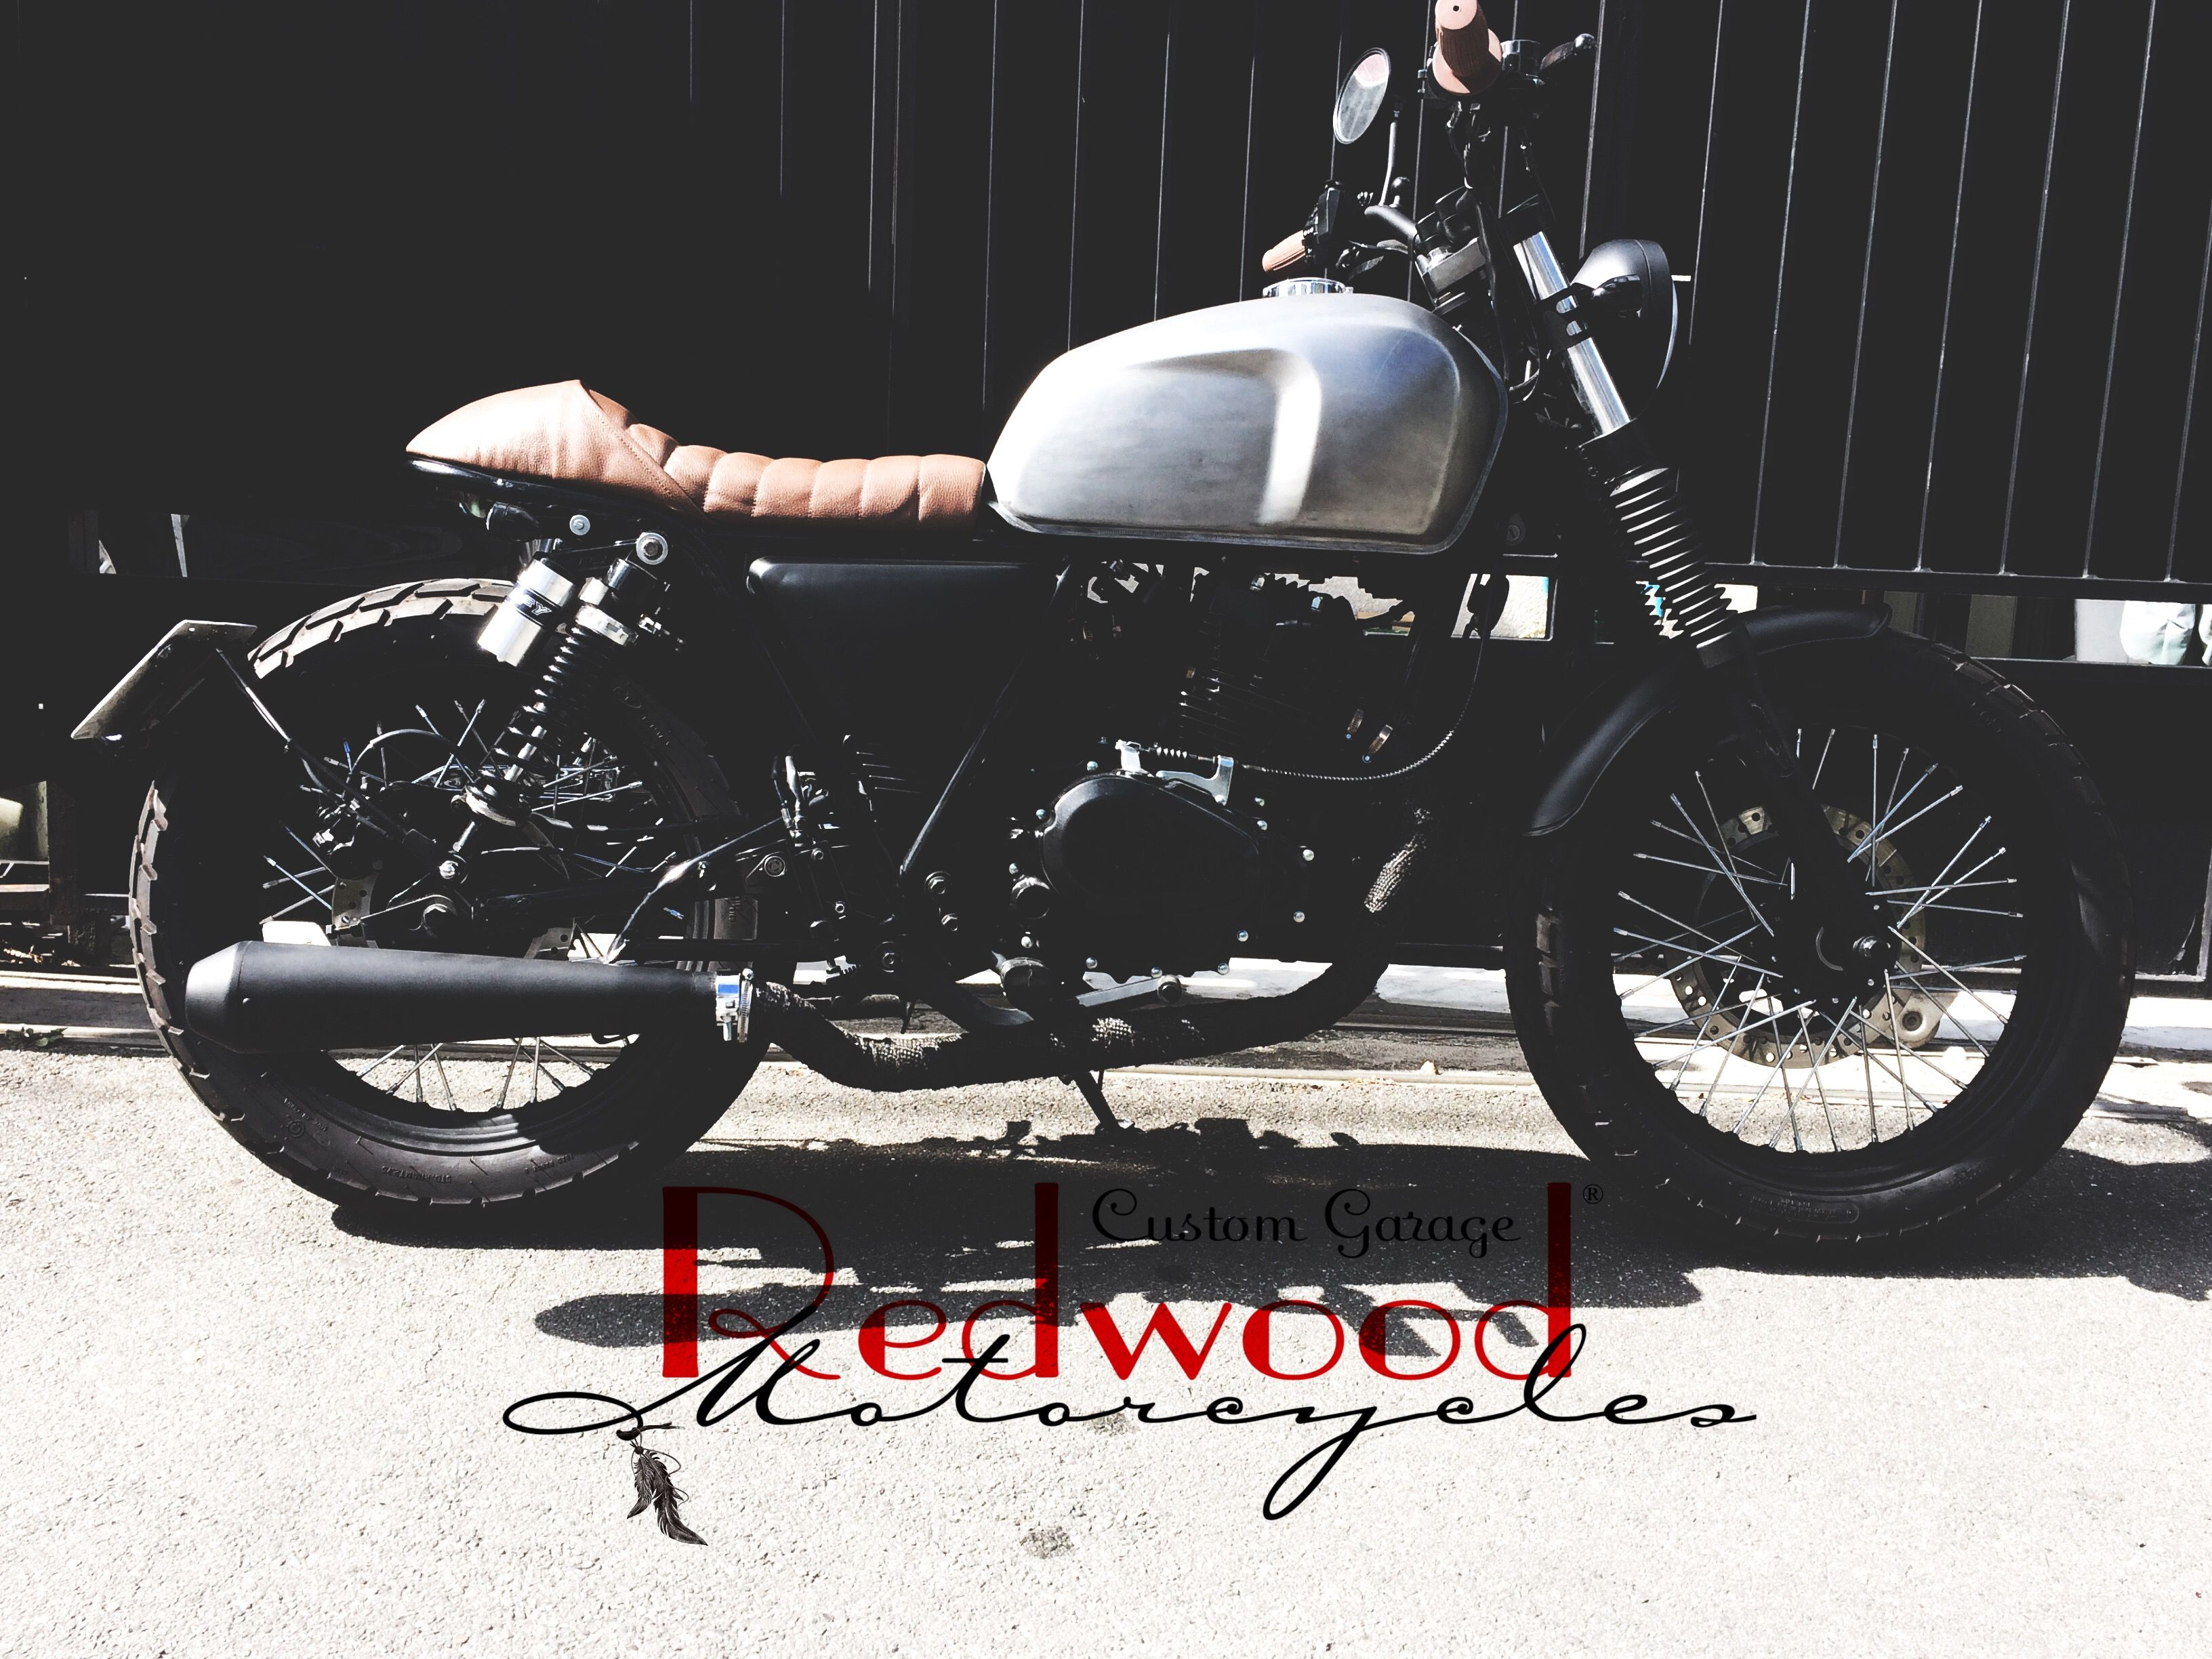 Brixton 125 By Redwood Motorcycles Custom Garage Cafe Racer ,